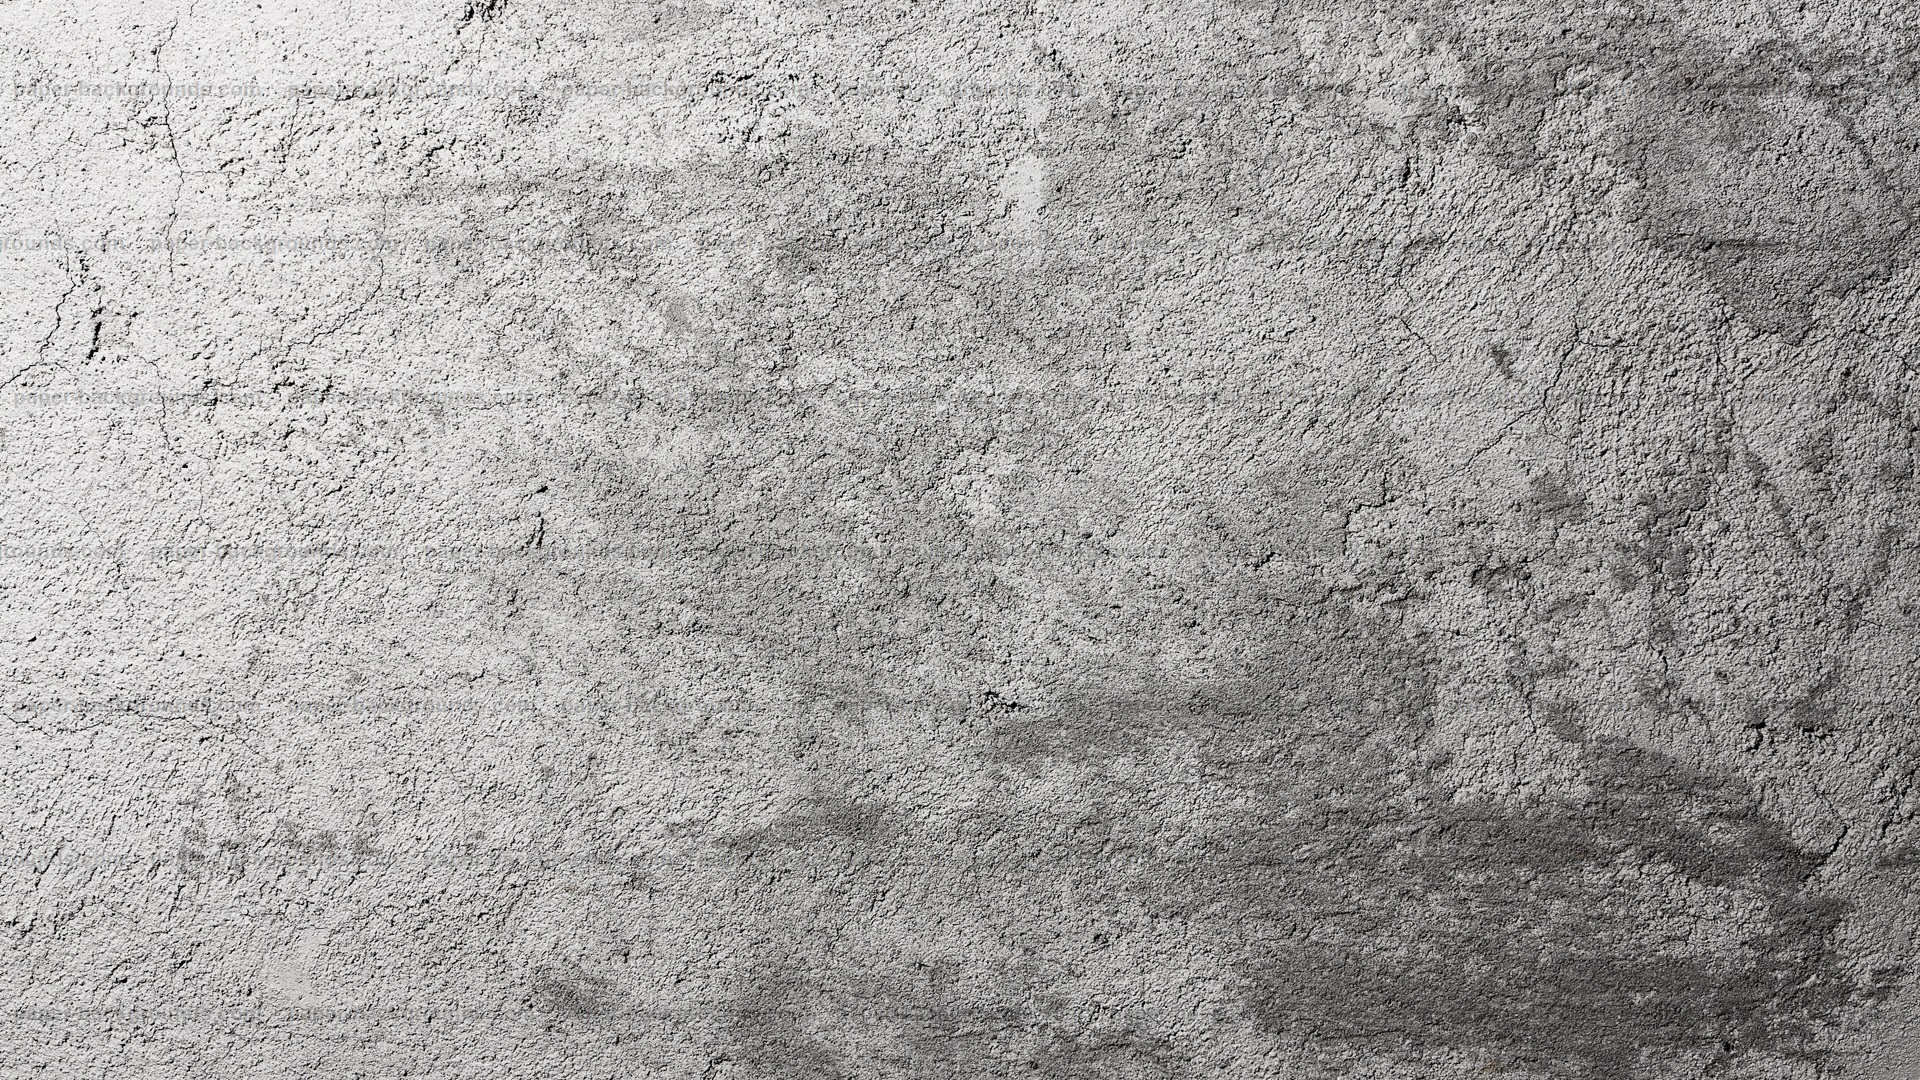 Vintage Gray Concrete Wall Texture HD